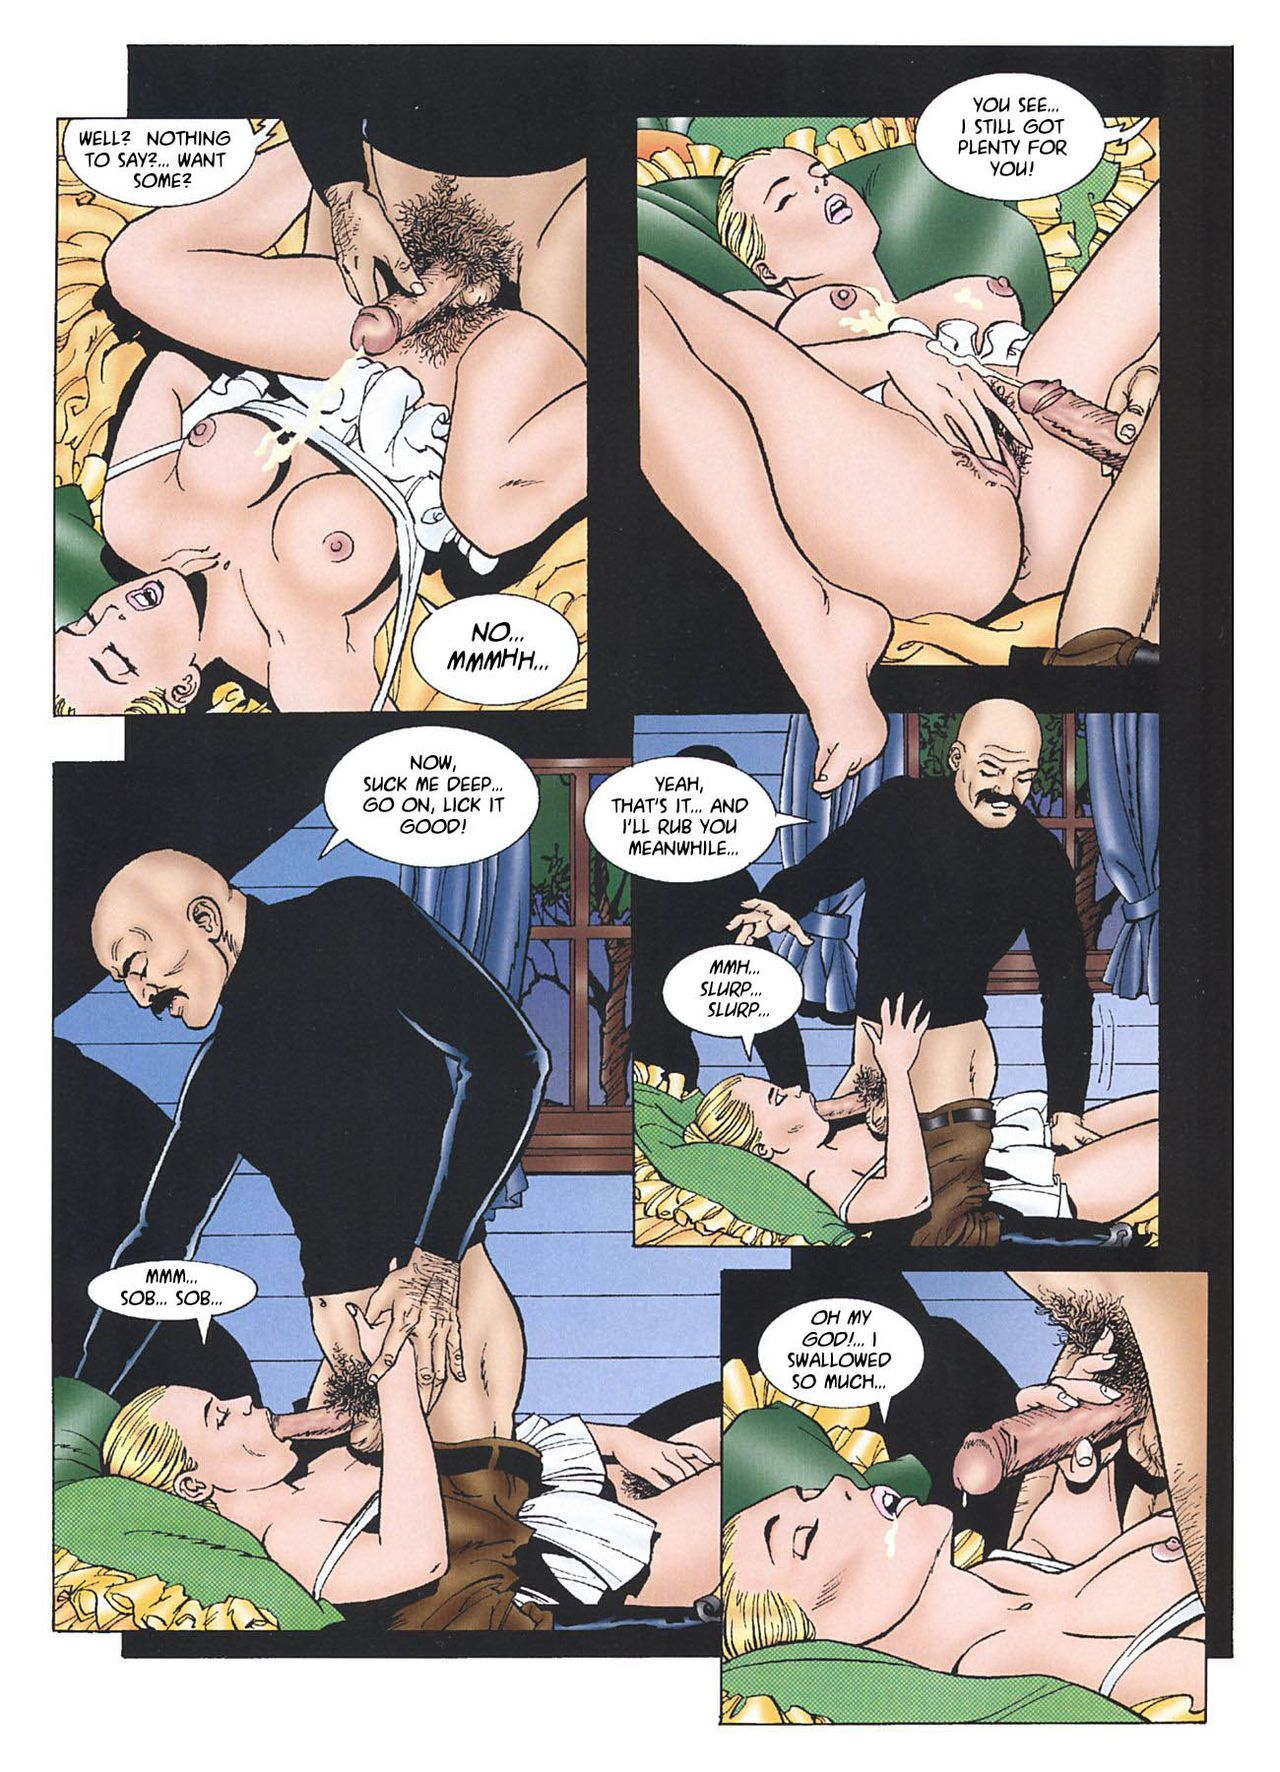 Family circus cartoons naked xxx - The other family circus porn circus  cartoon porn the family